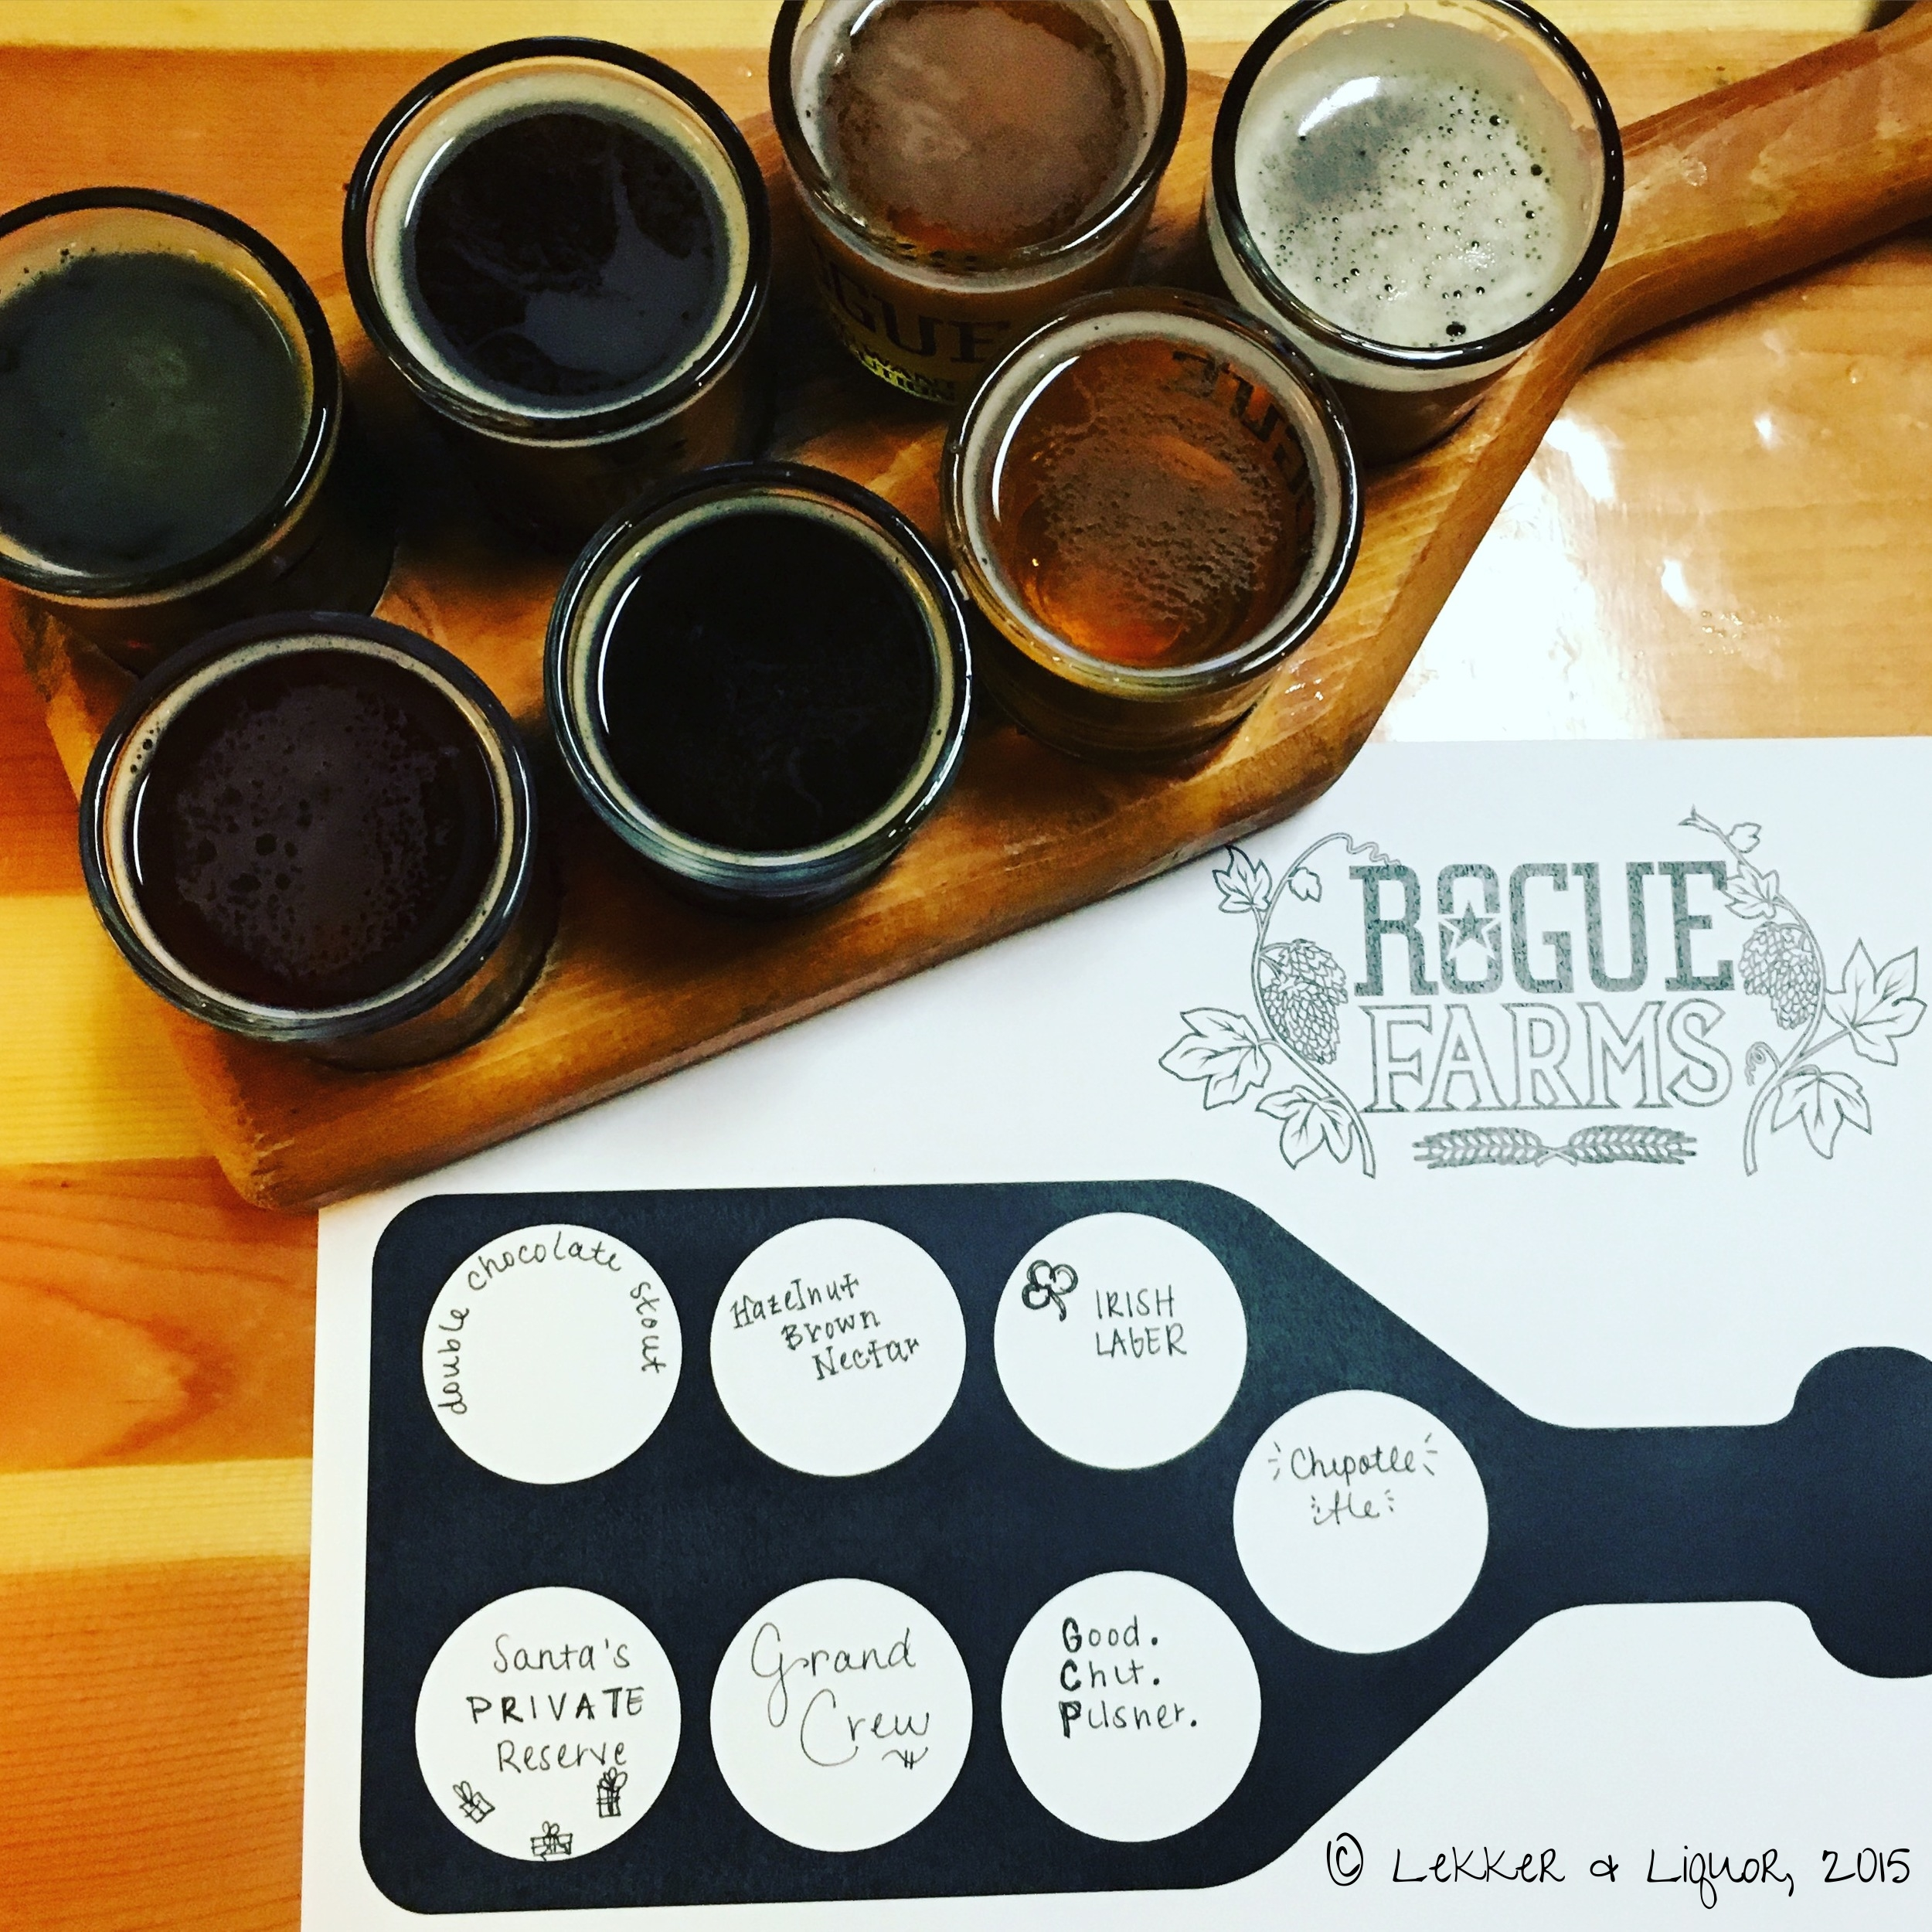 Rogue Brewery in Newport, OR